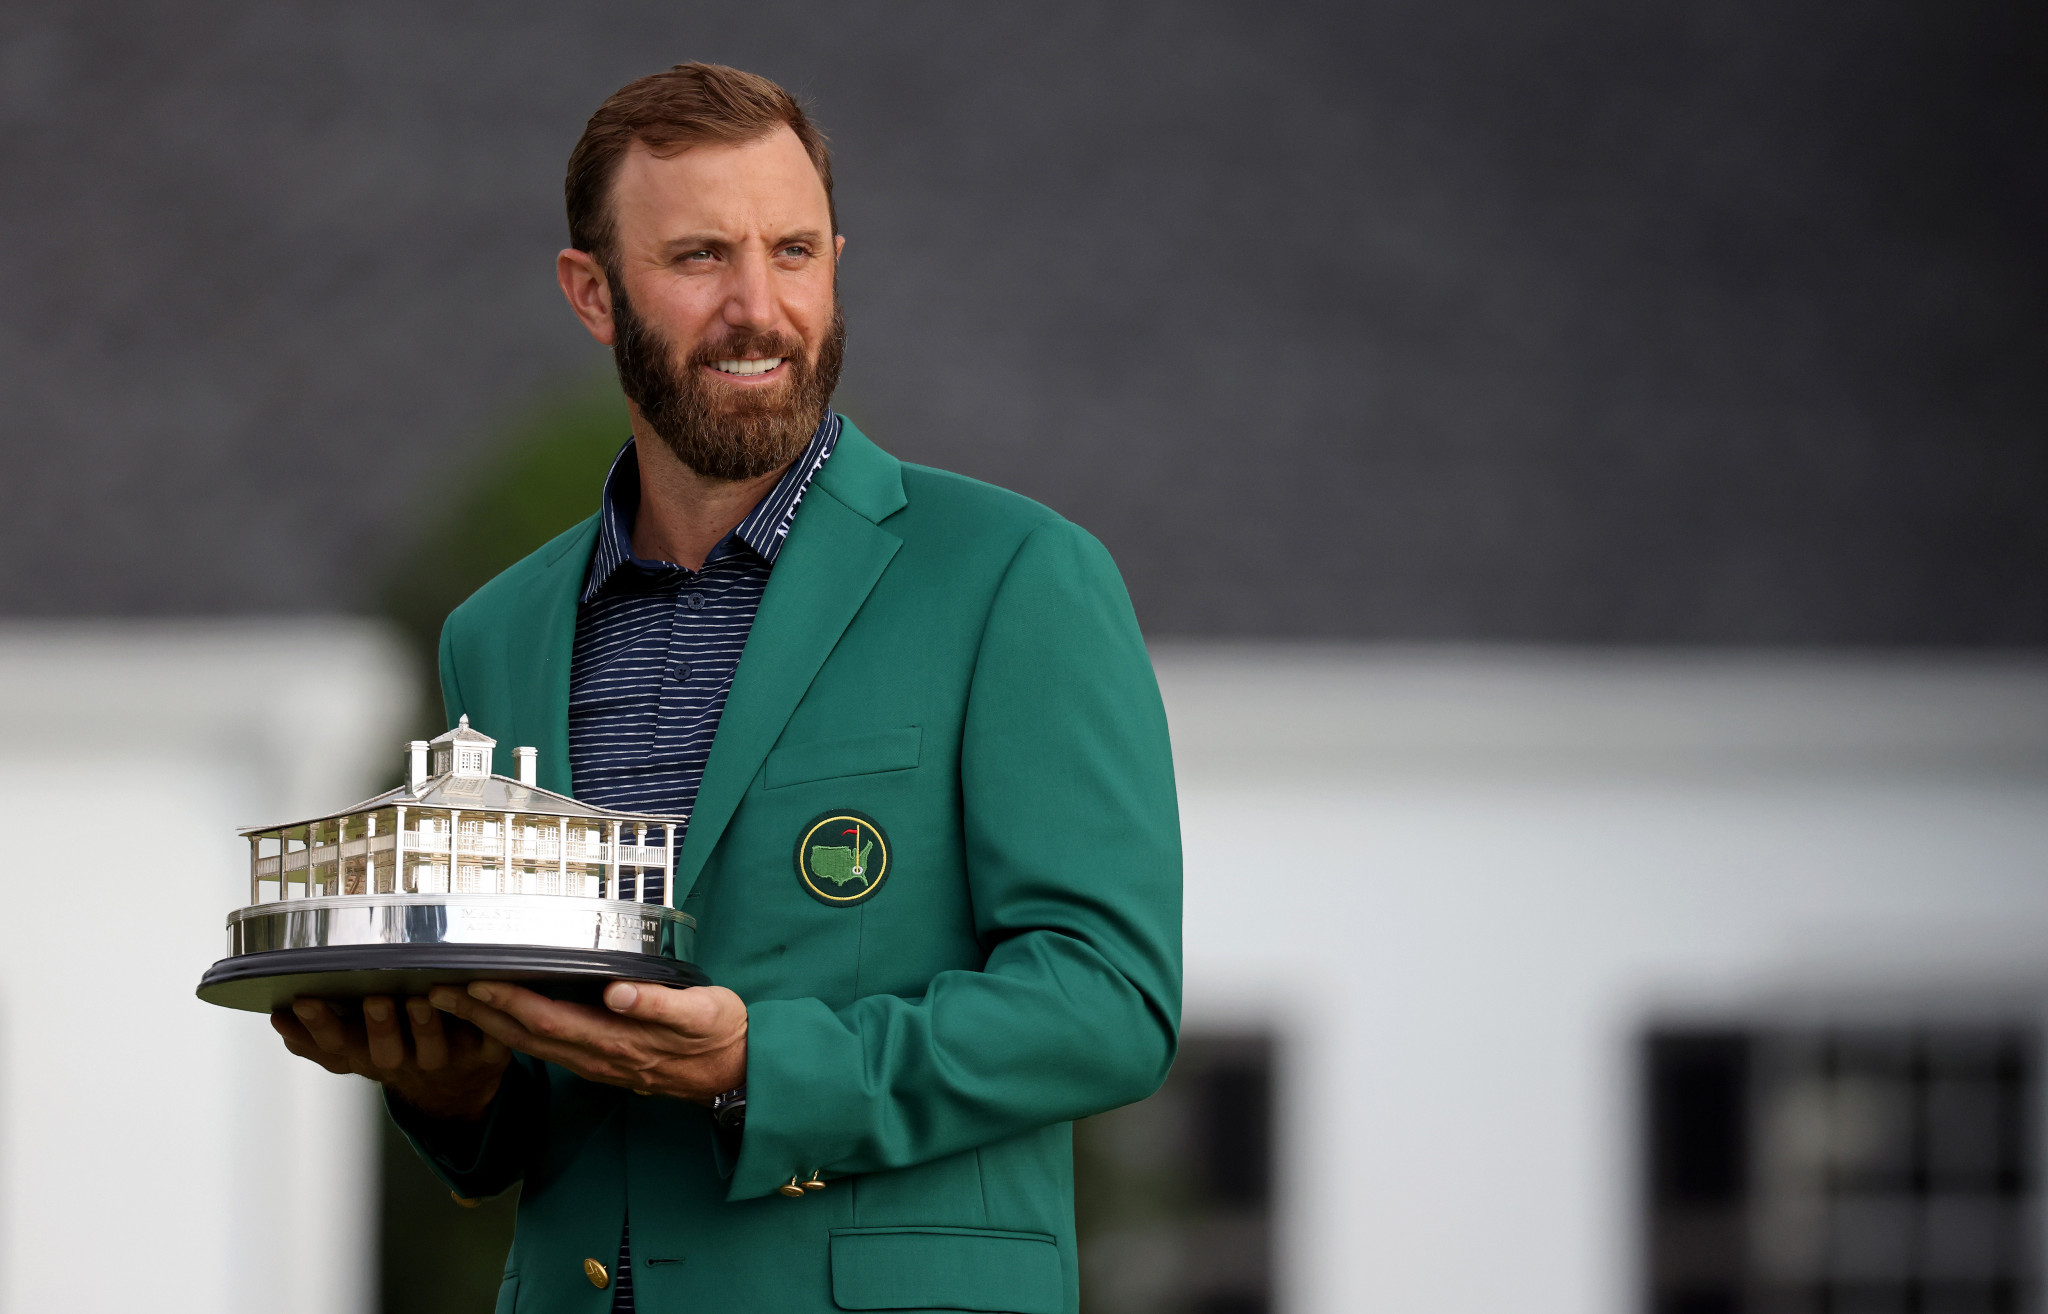 Johnson wins Masters by five-shots with record 20-under-par score